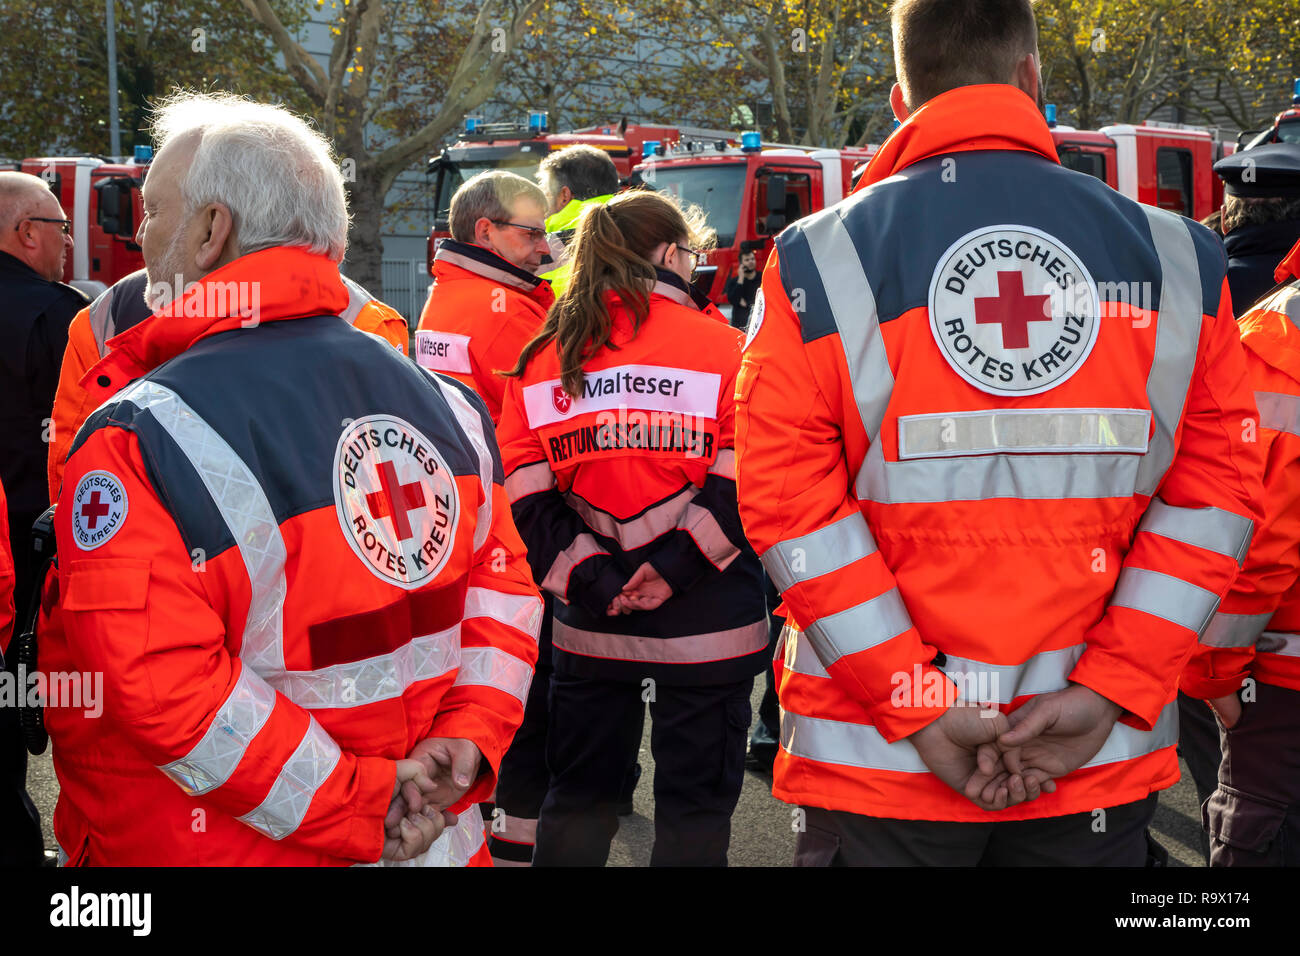 Rescue Workers, Rescue Service, Volunteers, Aid Organizations, Maltese aid service, German Red Cross, Stock Photo